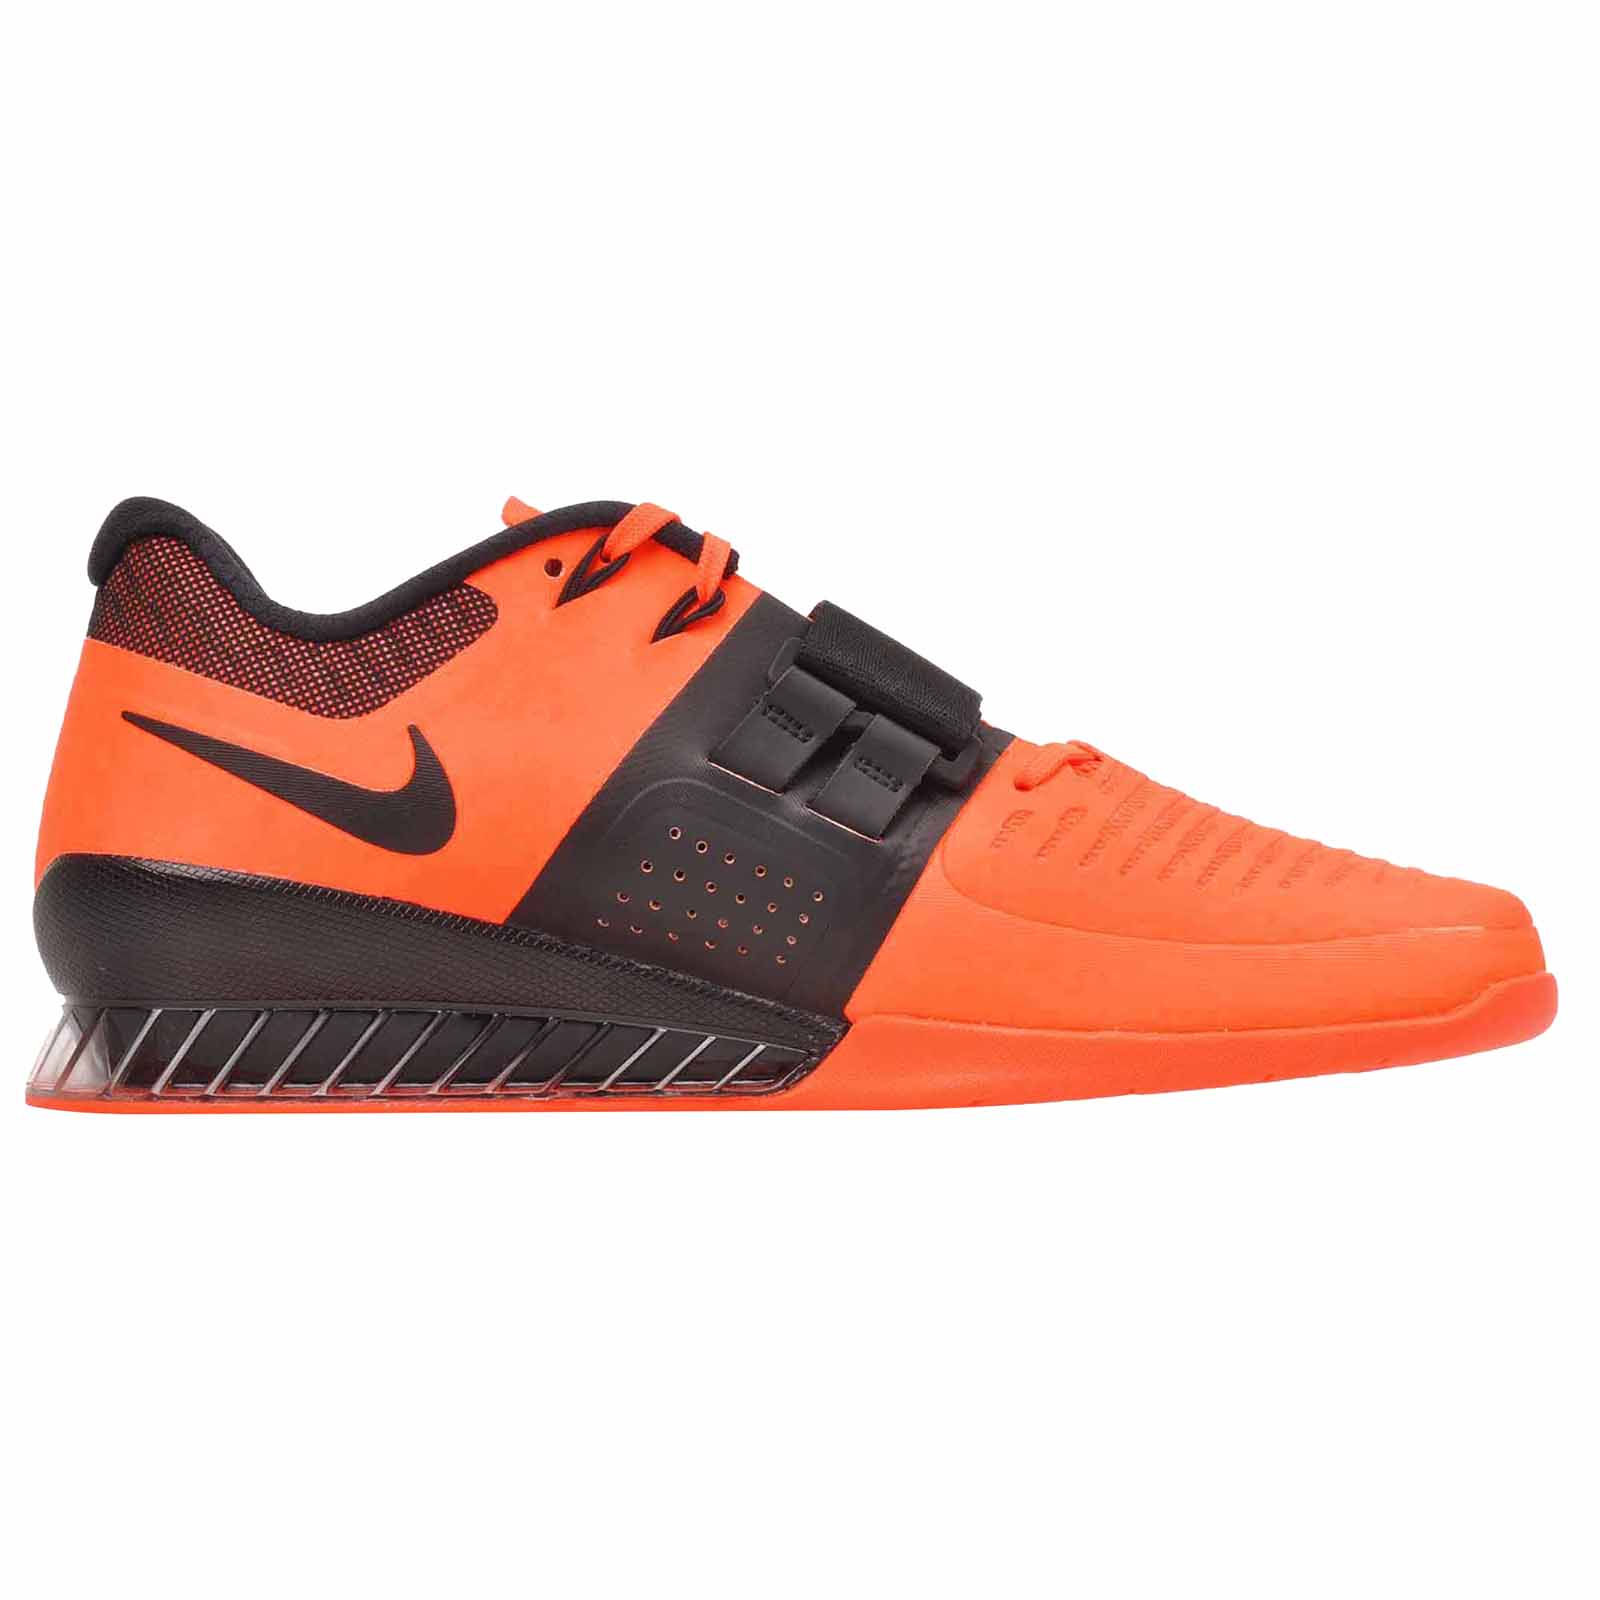 Nike Romaleos 3 Cross Training Mens Weightlifting Shoes Bright ... 5d5e5ad5a9c53